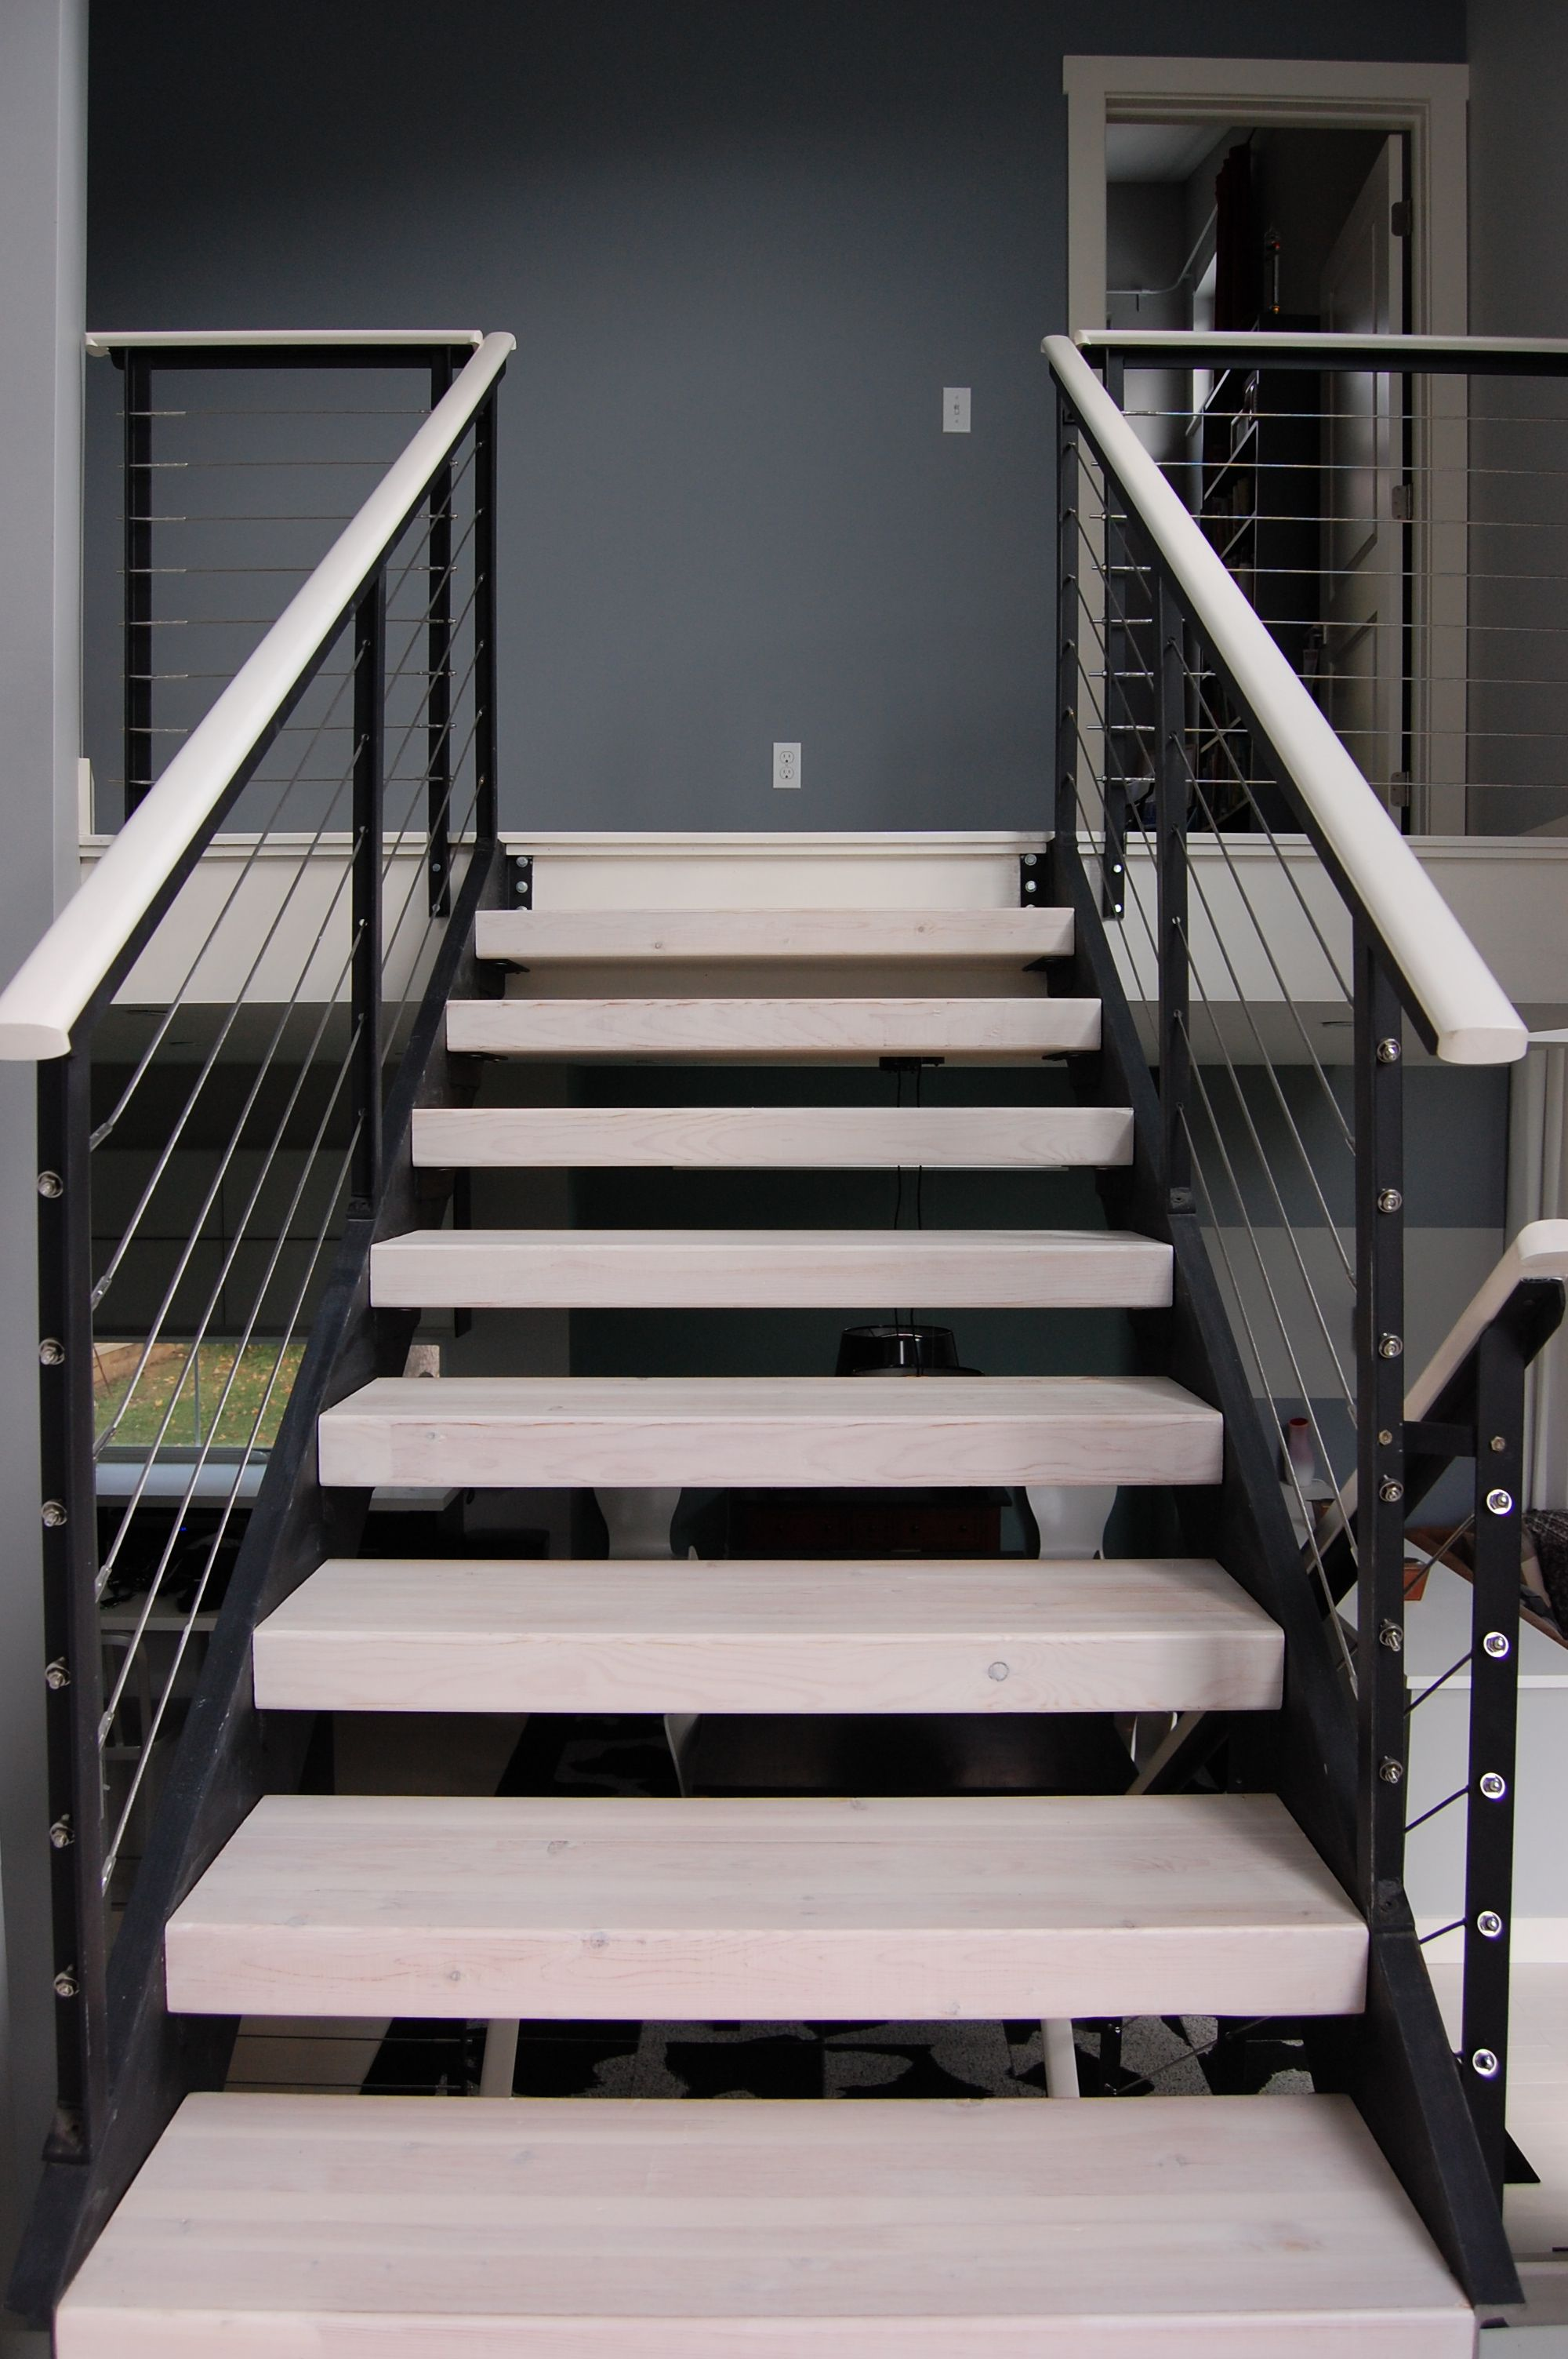 I Love This Modern Look With The Black Aluminum Posts And The IPE Wood  Handrail Painted